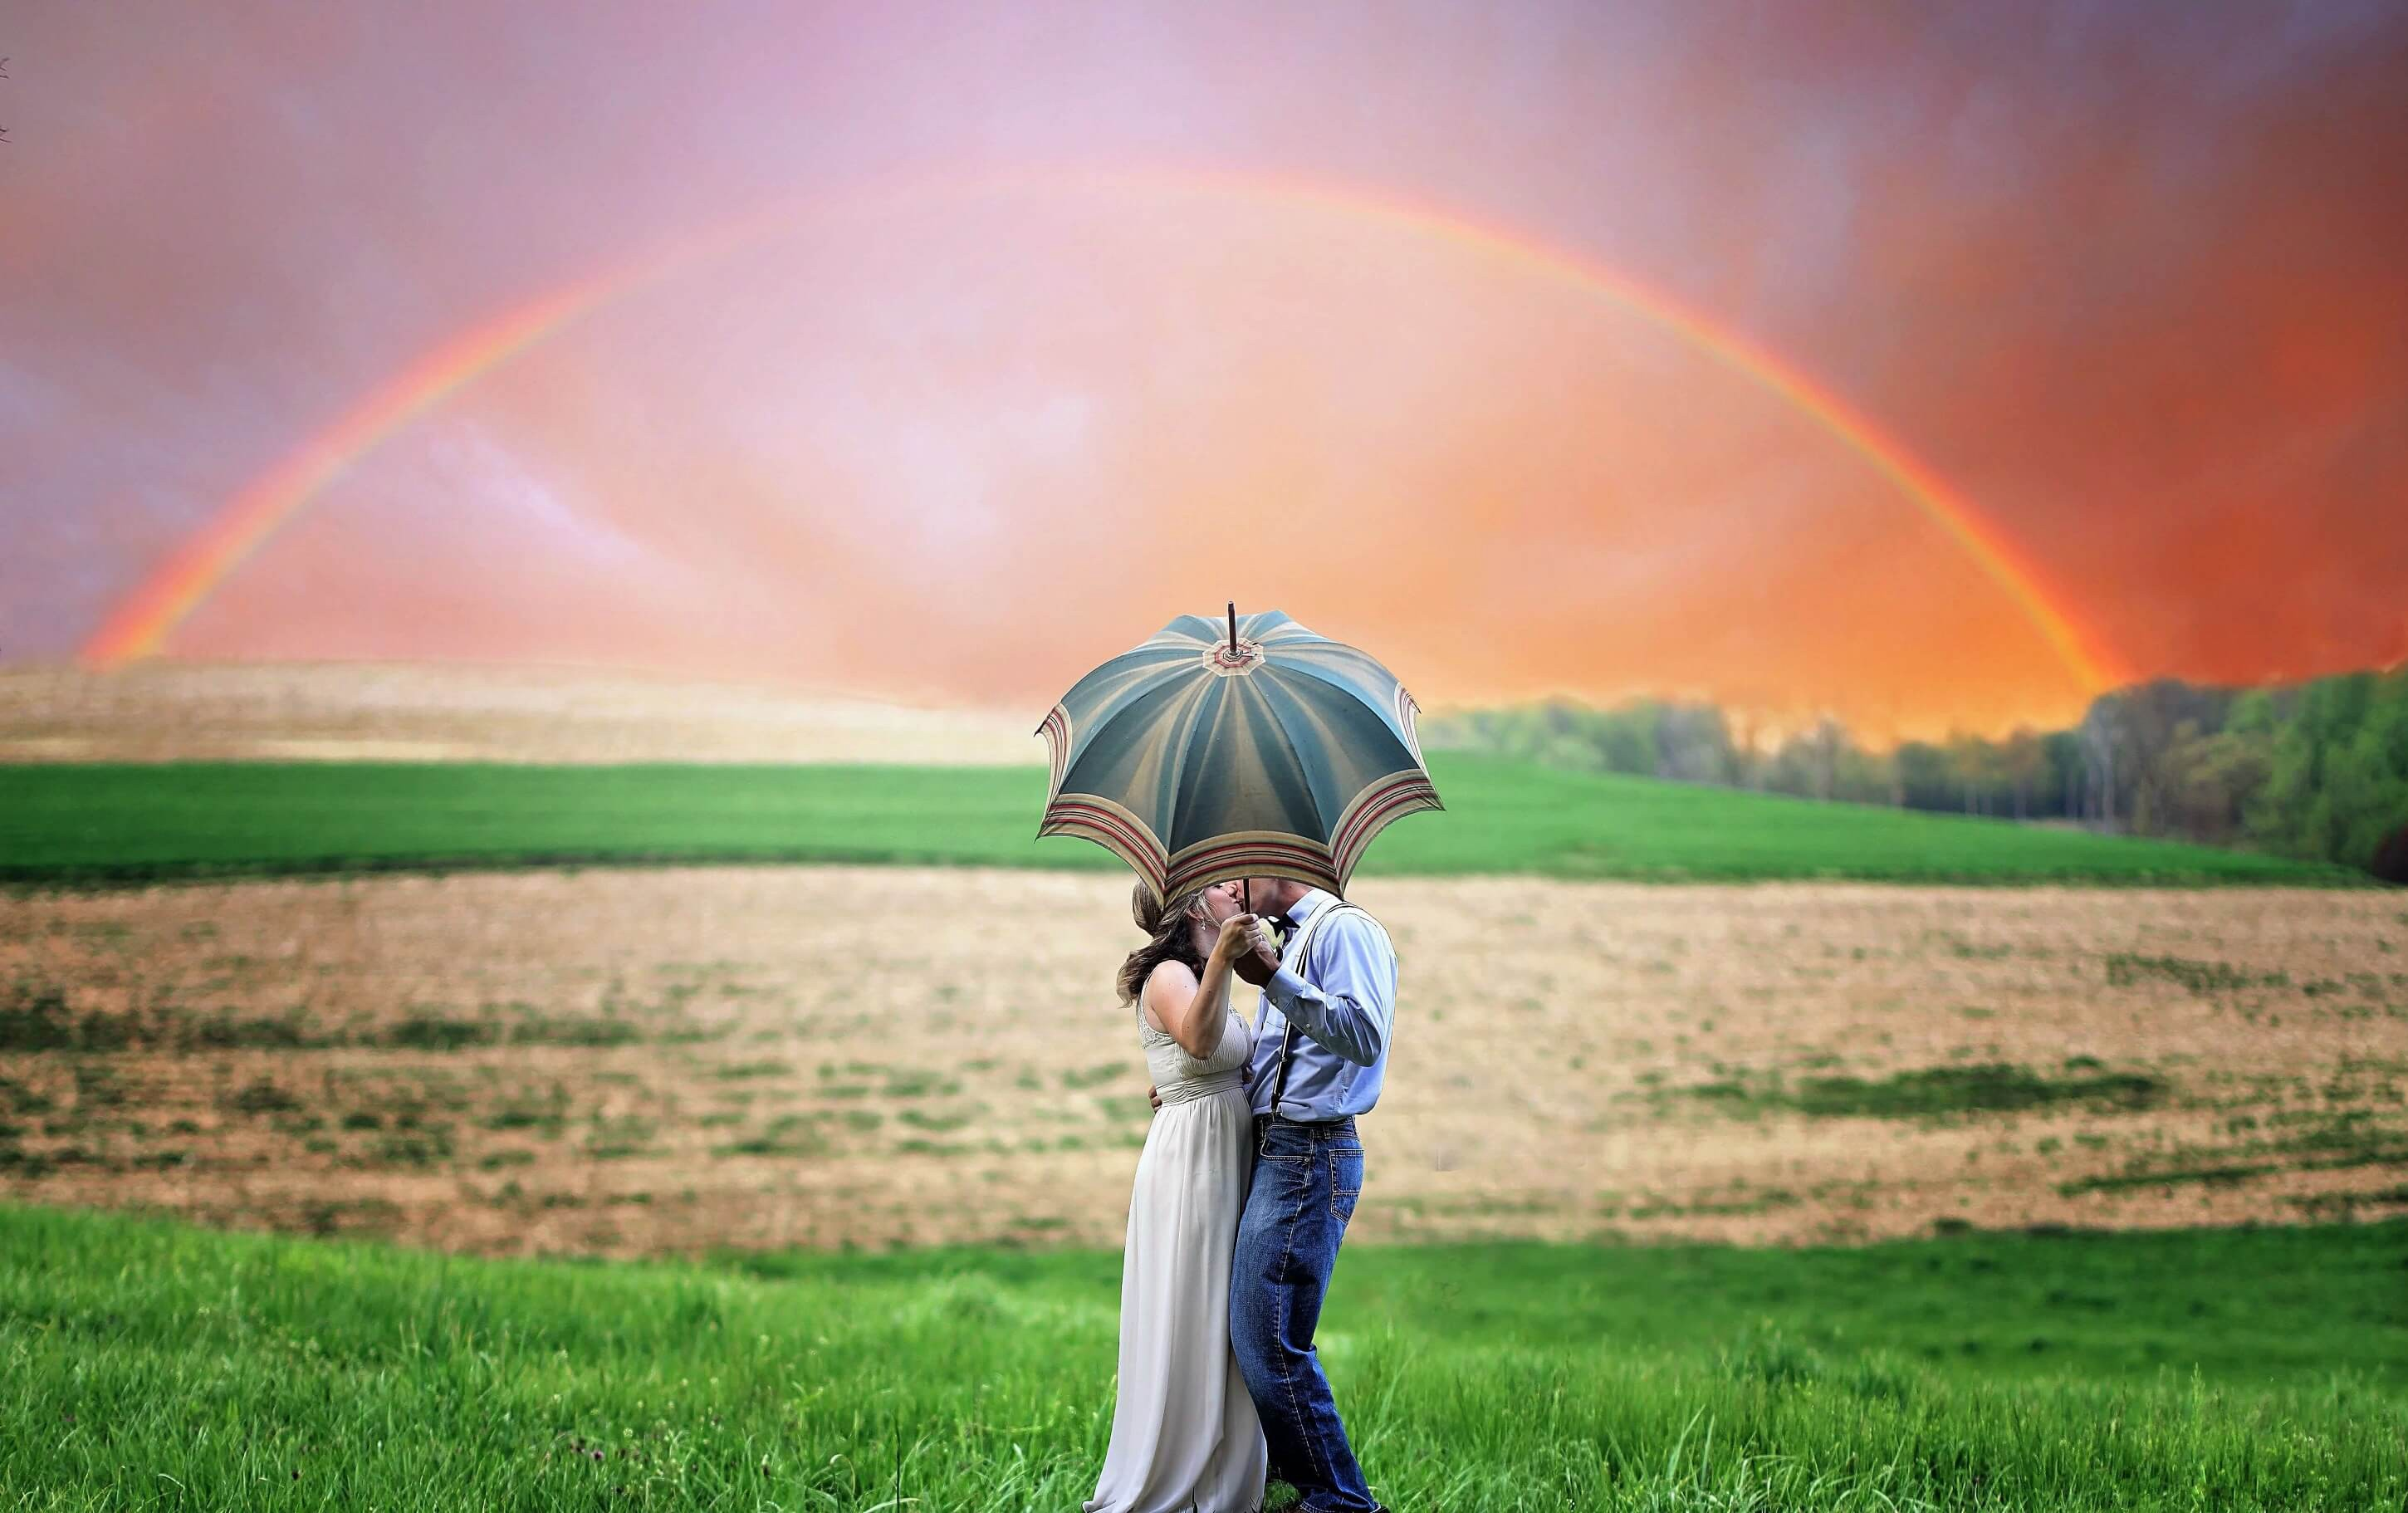 Evoking the concept behind Finneas debut album 'Optimist', the image shows a couple kissing on a field under an umbrella with a rainbow in the background